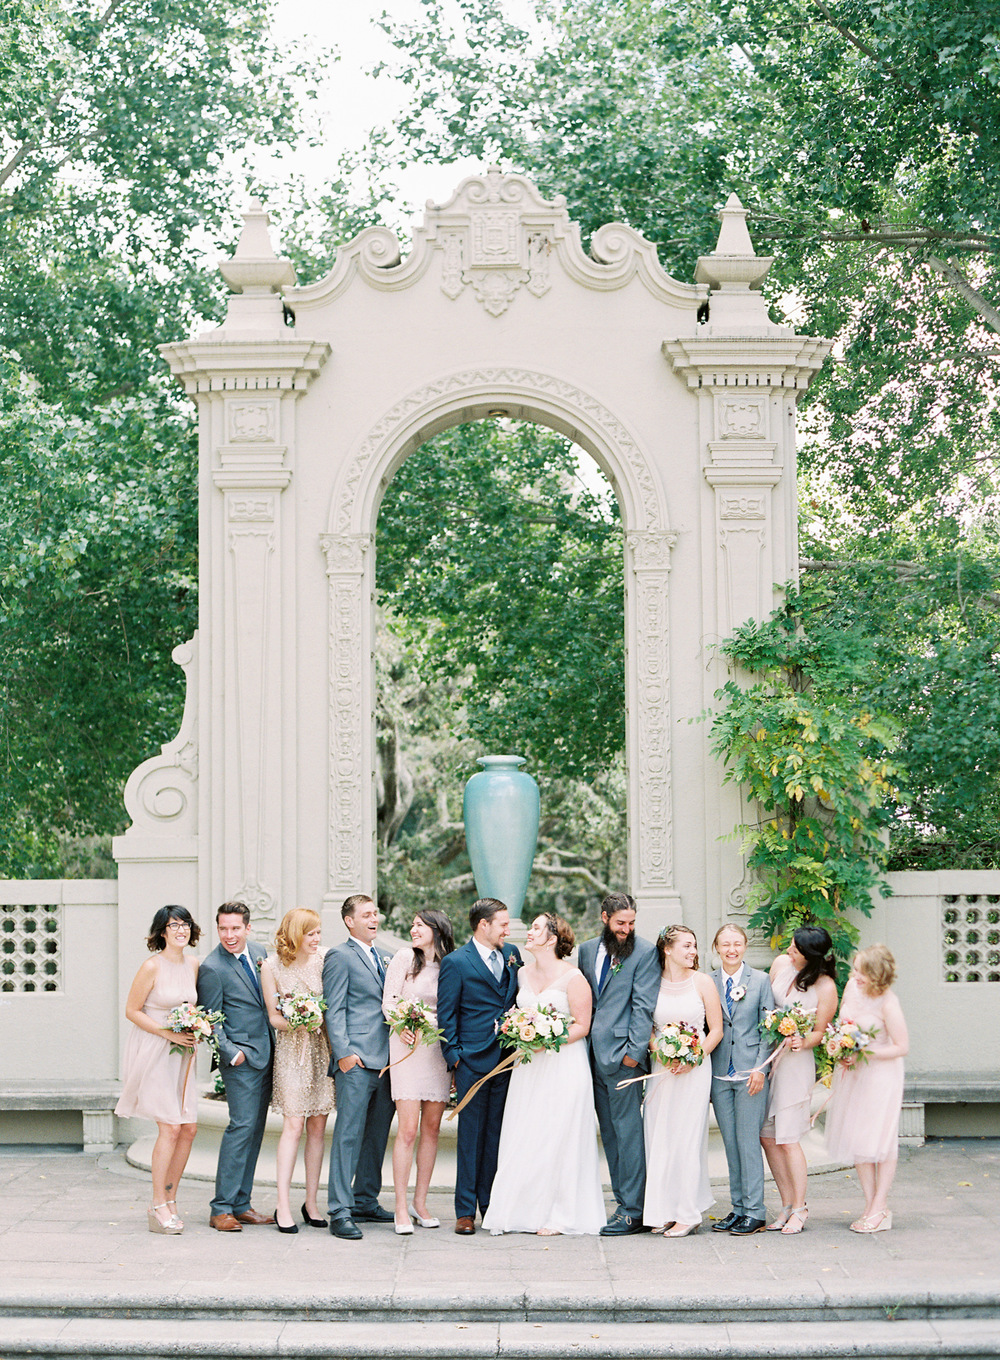 boho-inspired-wedding-at-piedmont-community-center-94.jpg